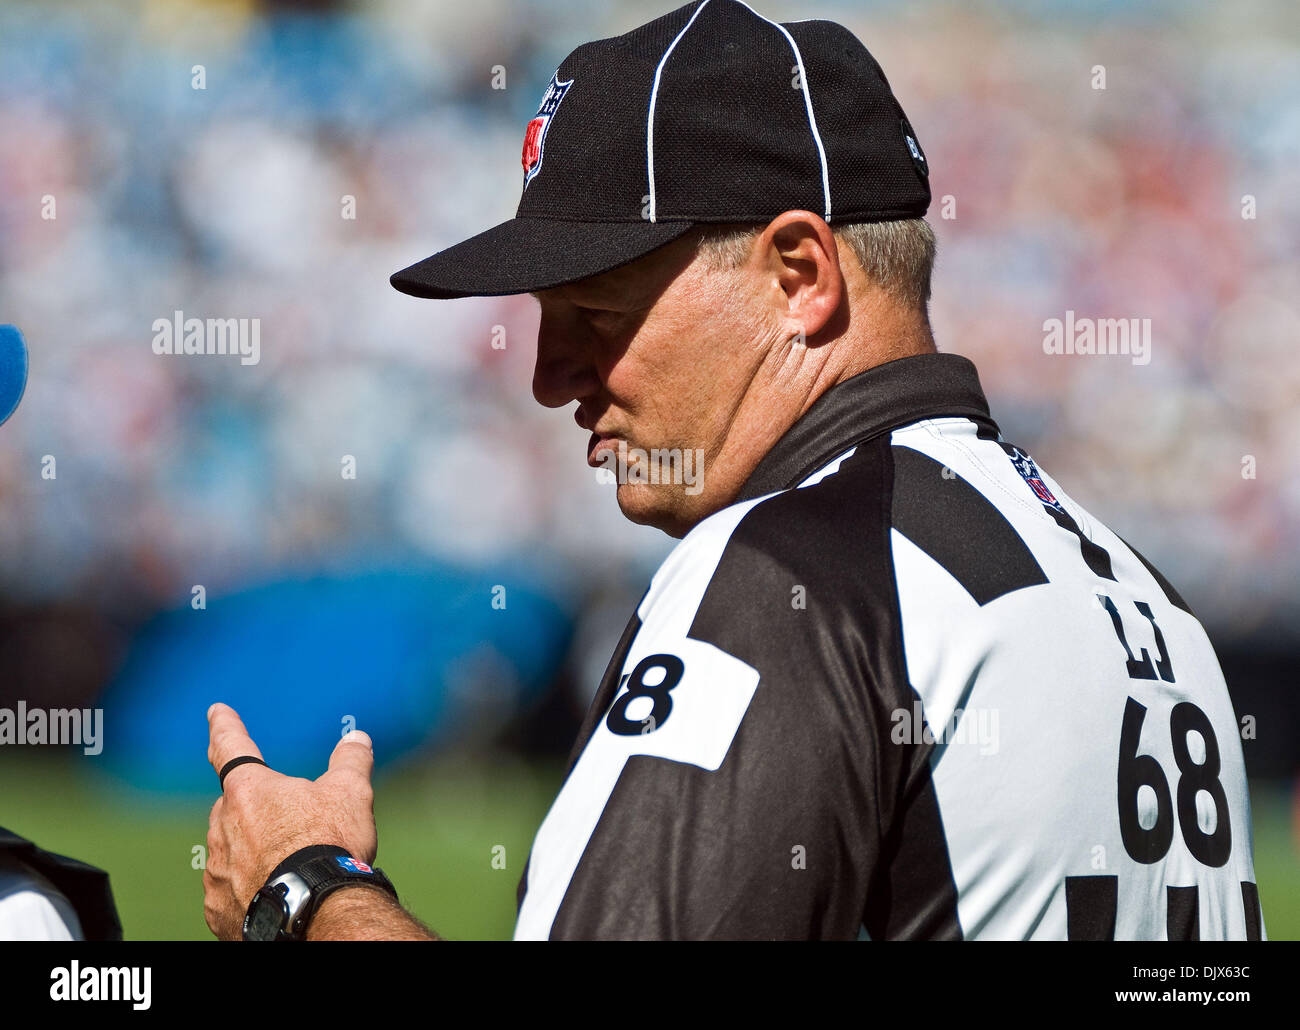 Nfl Referee Stock Photos   Nfl Referee Stock Images - Alamy 3f7c2997b